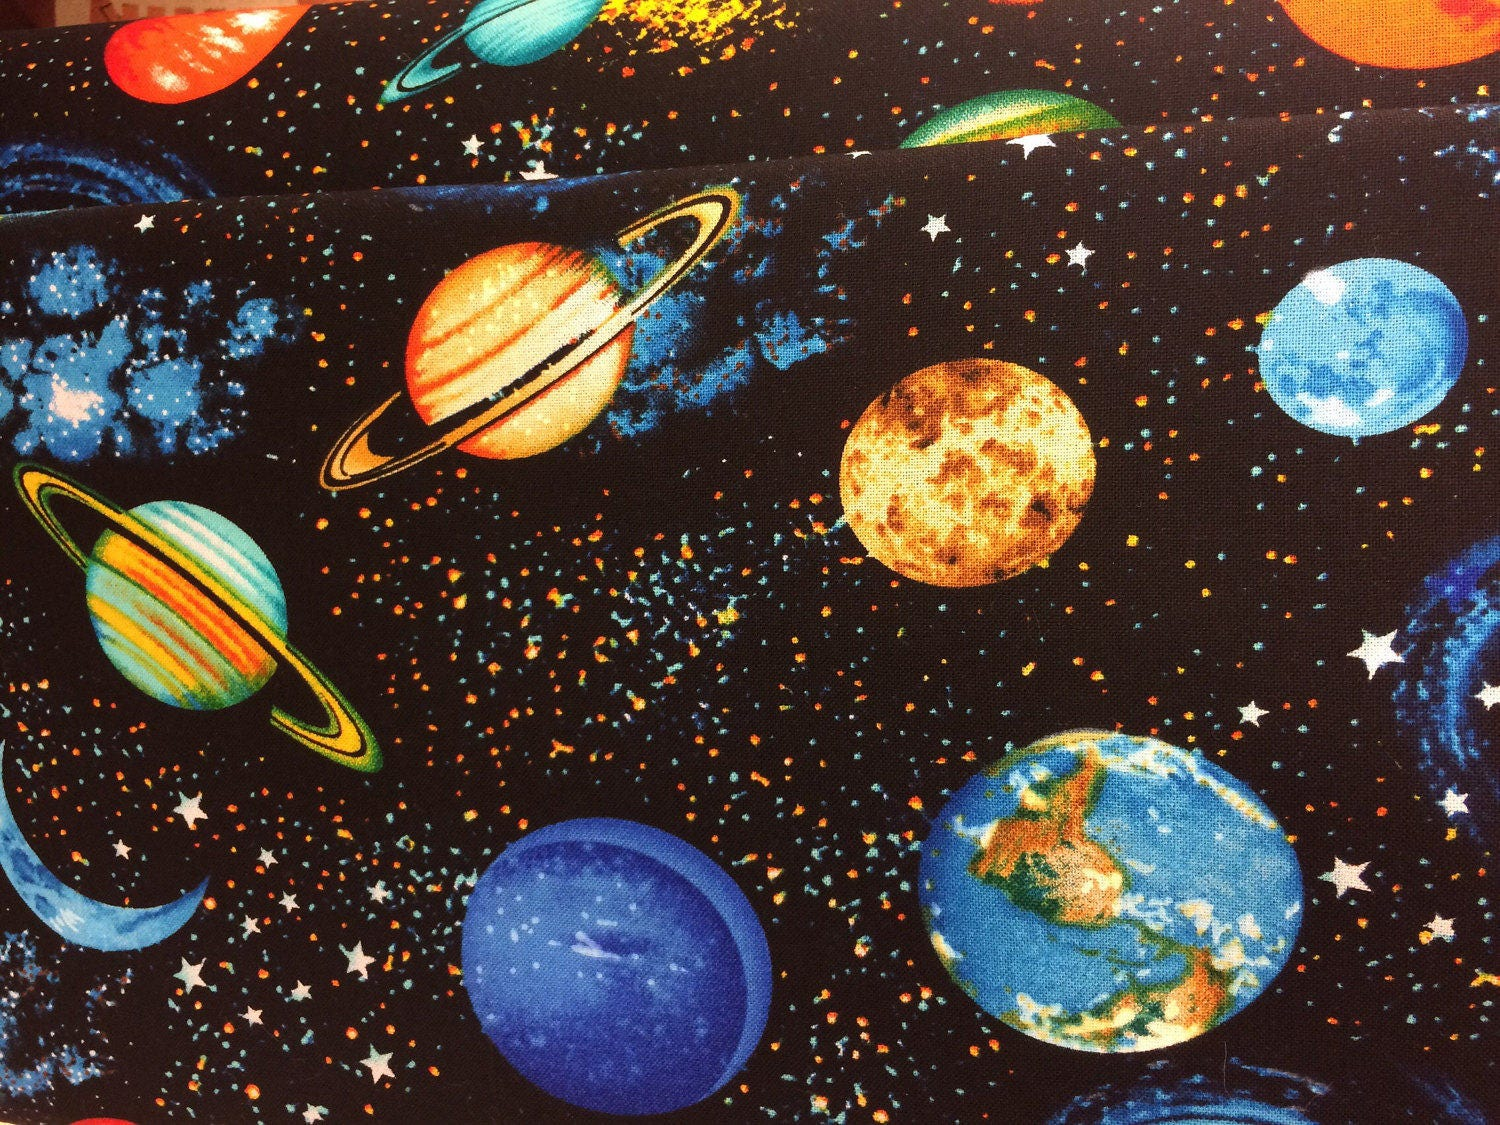 Planets outer space solar system fabric galaxy fabric for Space themed fabric